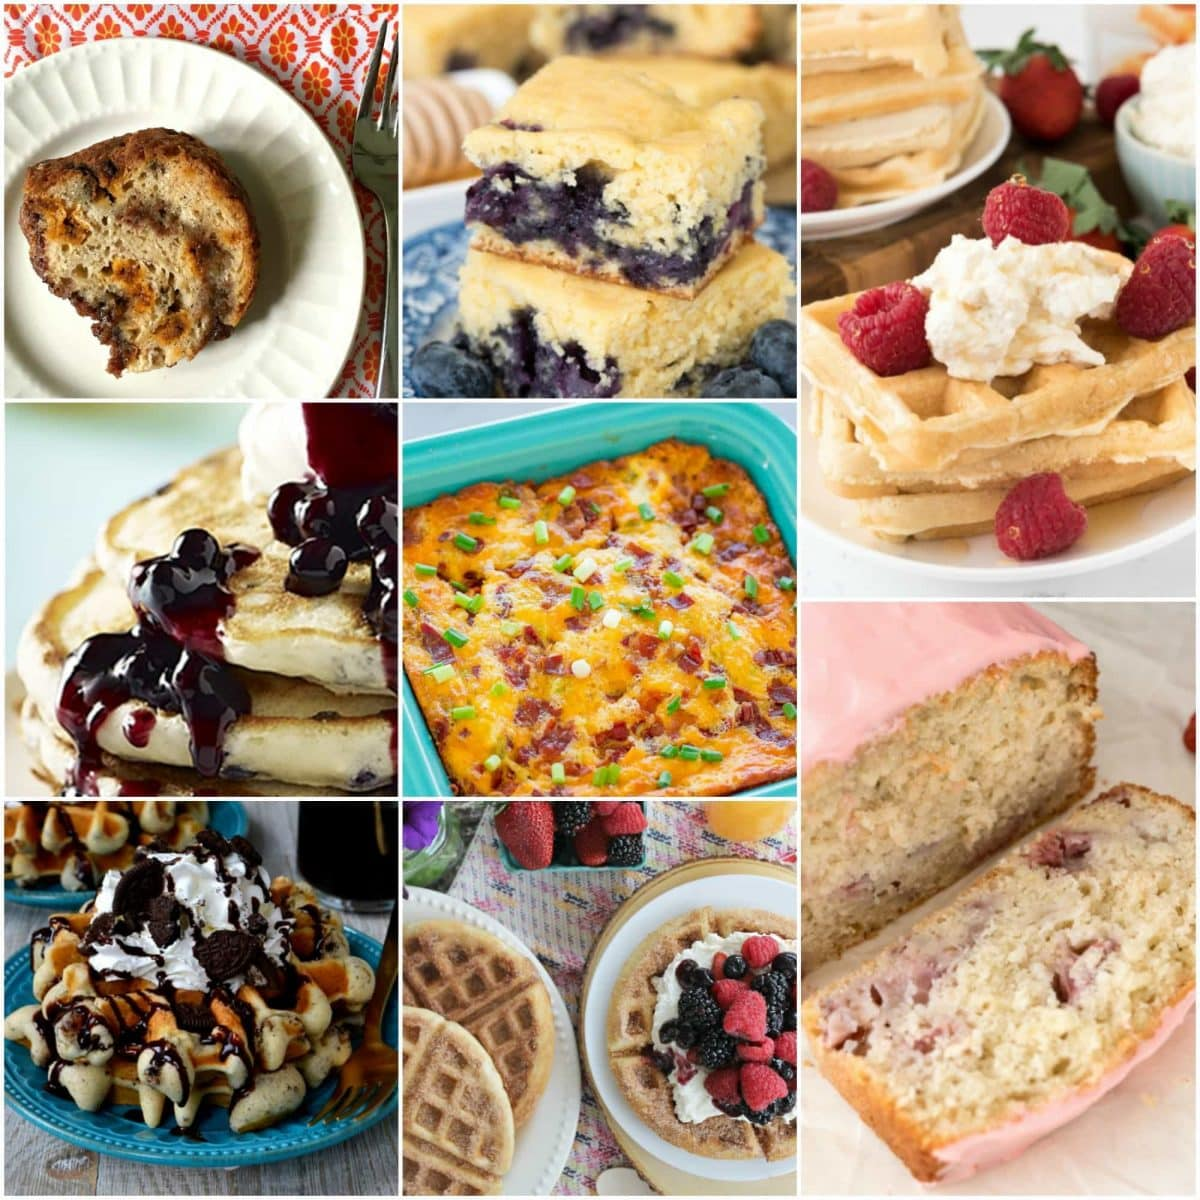 8 EASY Brunch Recipes you MUST make ASAP! These recipes all start with a mix so they're on the table in no time at all. From bread to pancakes to eggs, every favorite recipe is here!